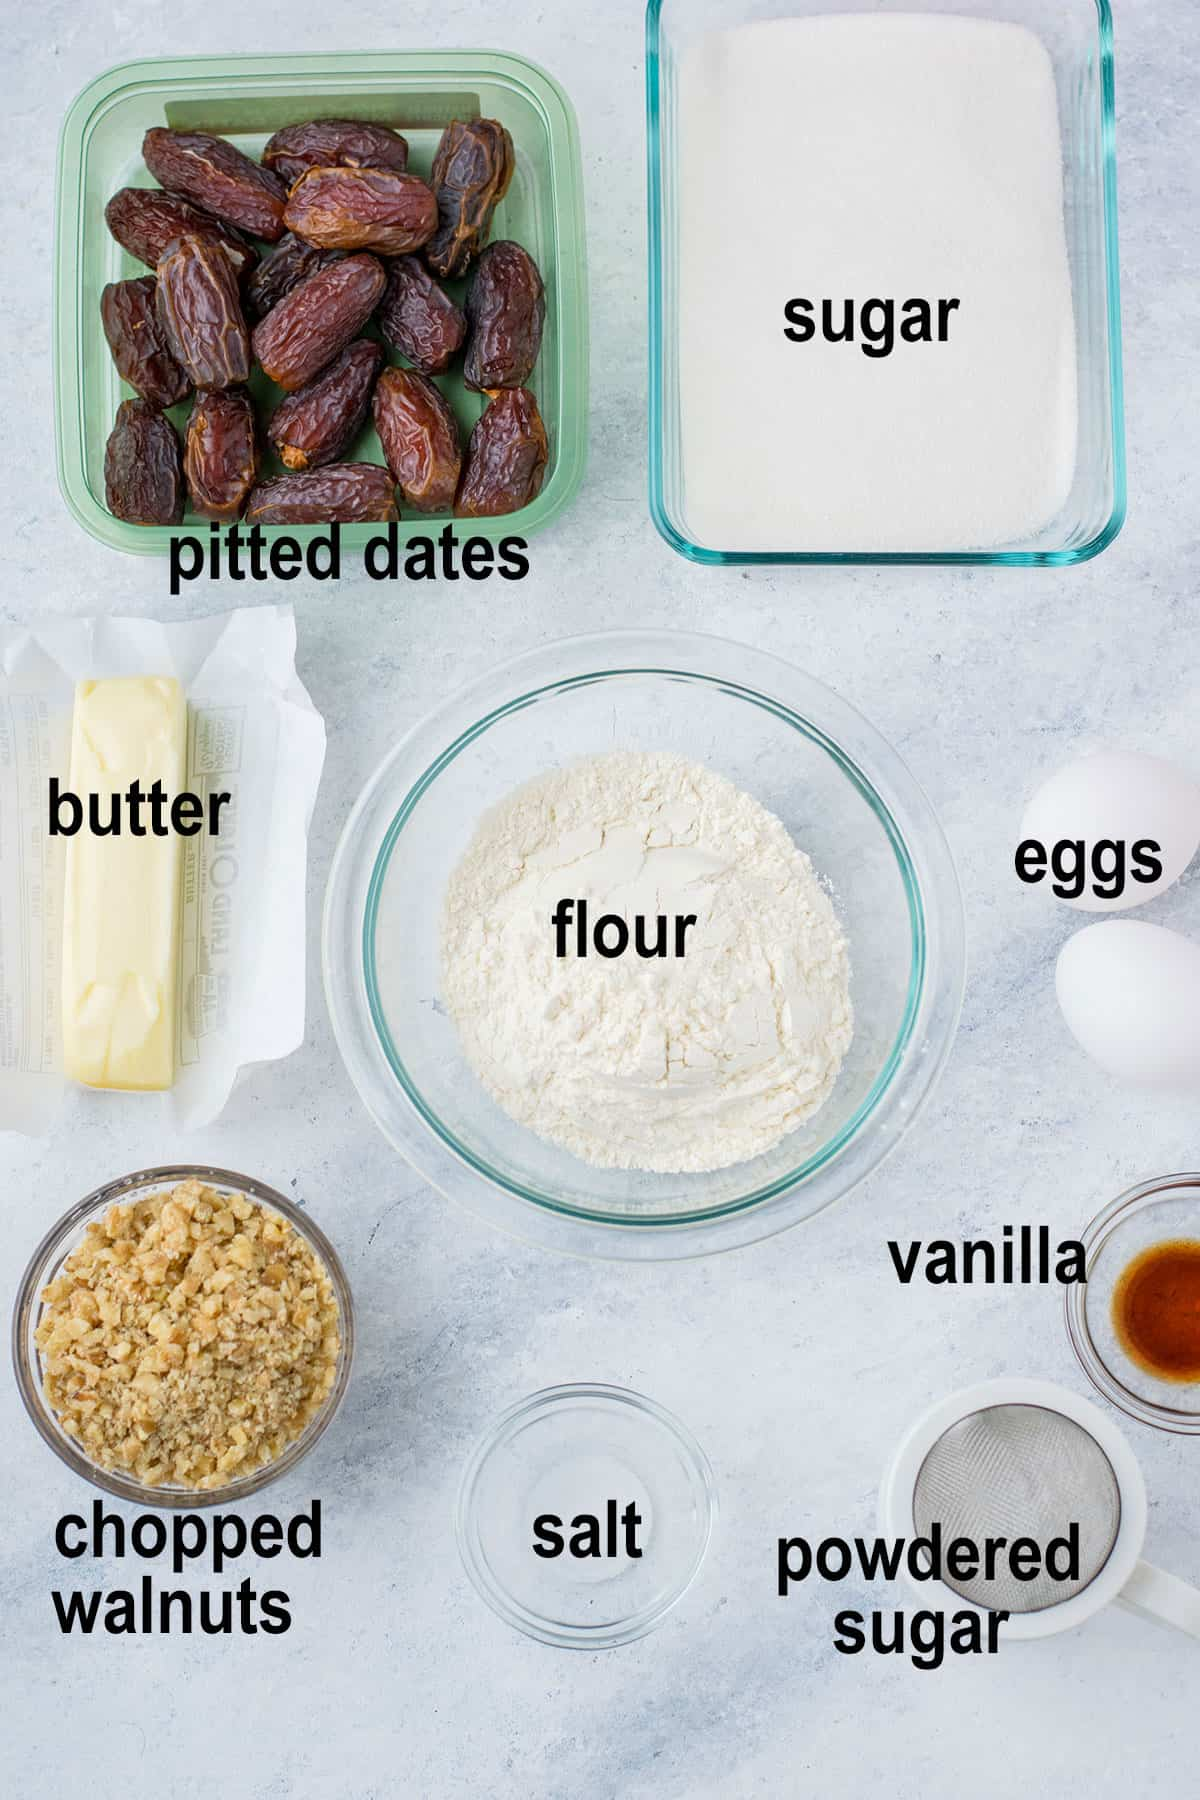 dates, sugar, butter, flour, eggs, walnuts, and ingredients